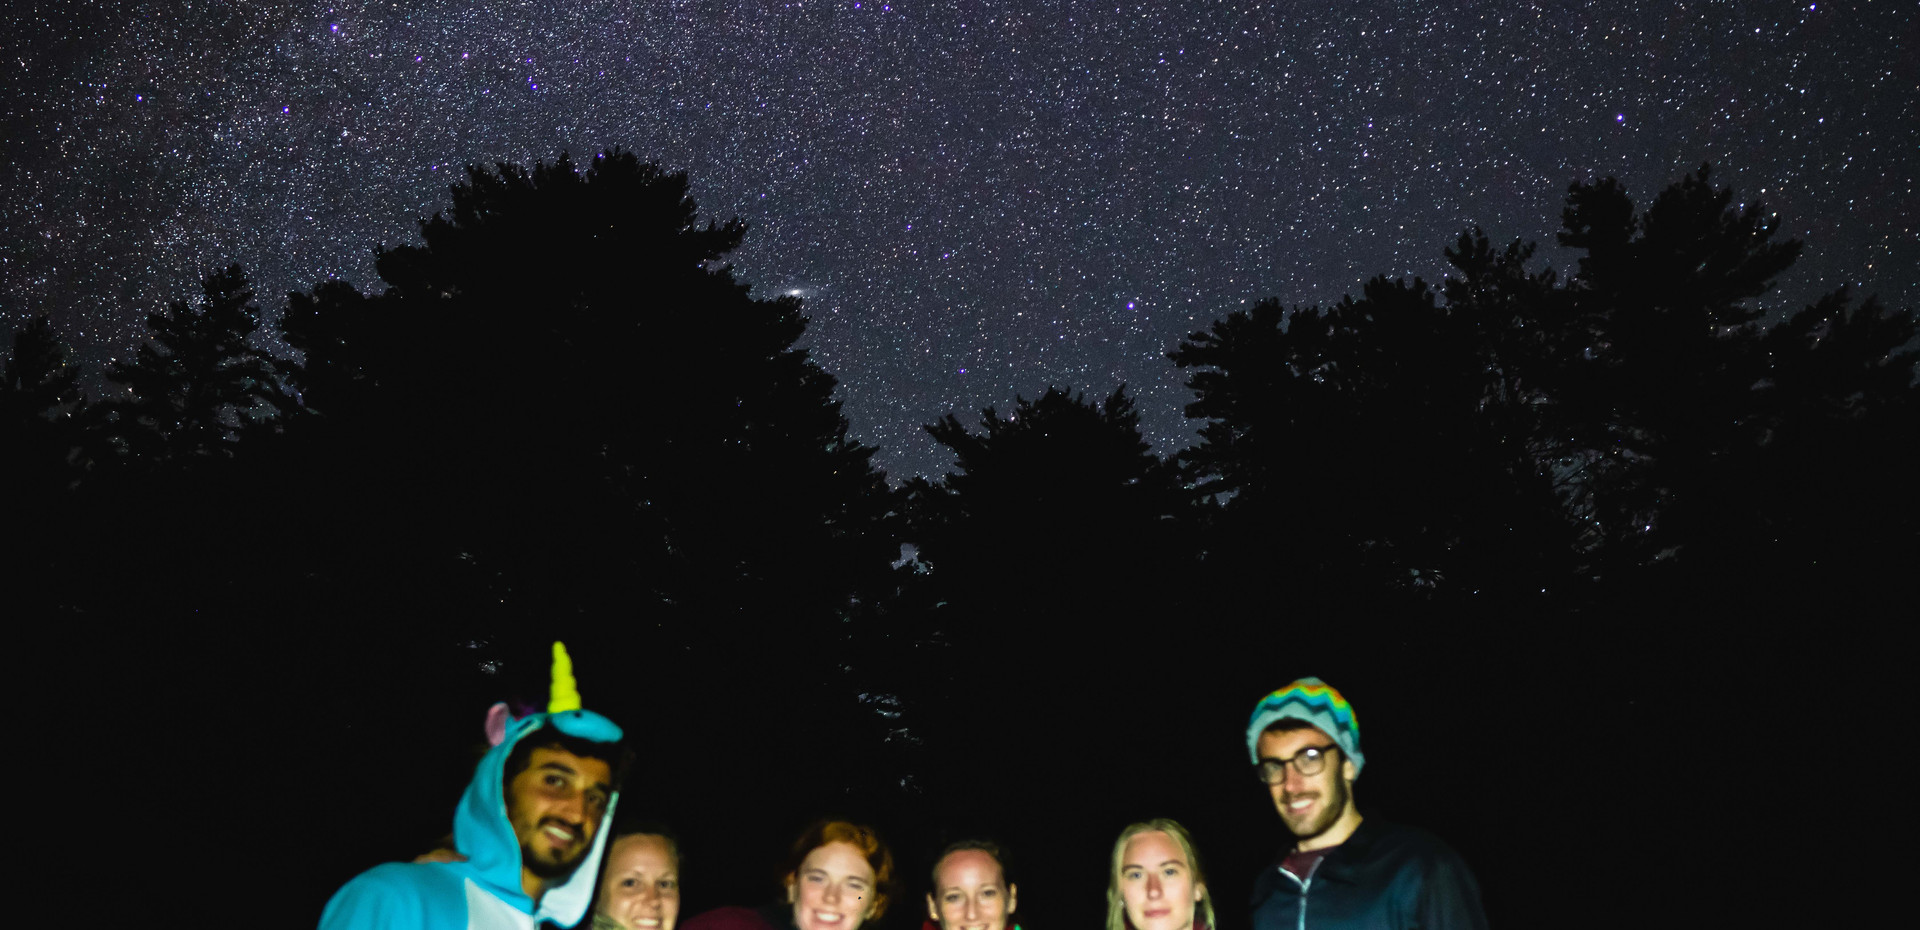 Experience pure starlight without light pollution